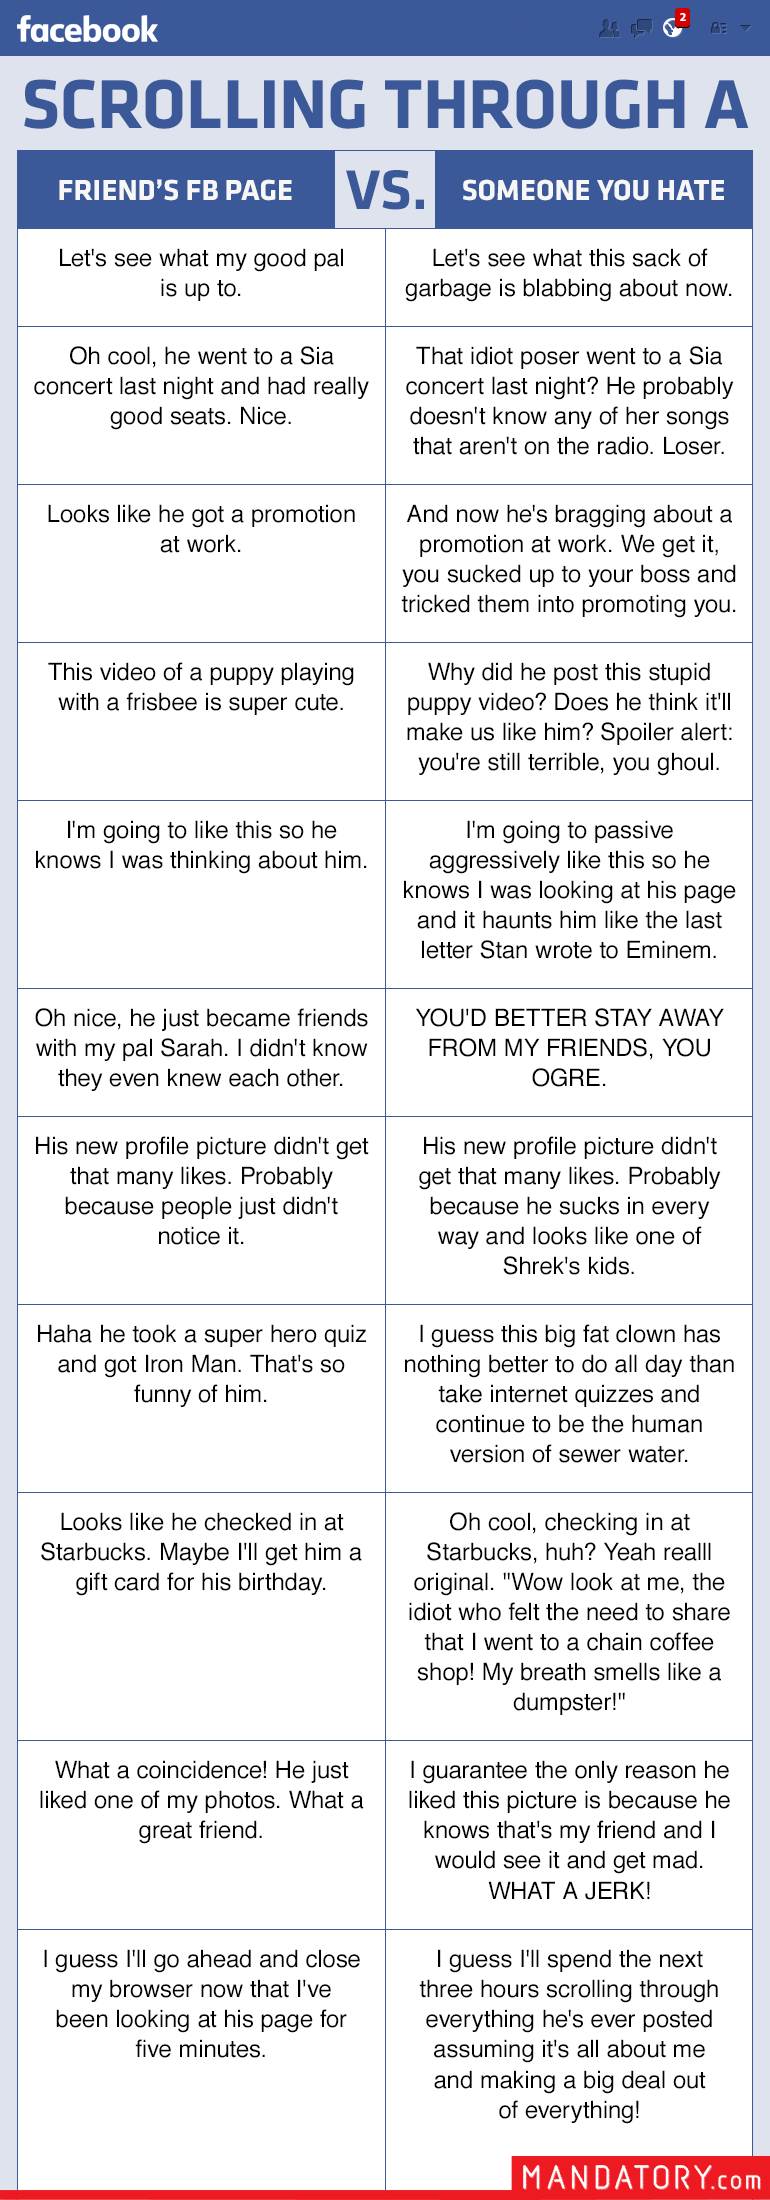 funny facebook infographic, facebook friend vs facebook enemy, scrolling through facebook chart